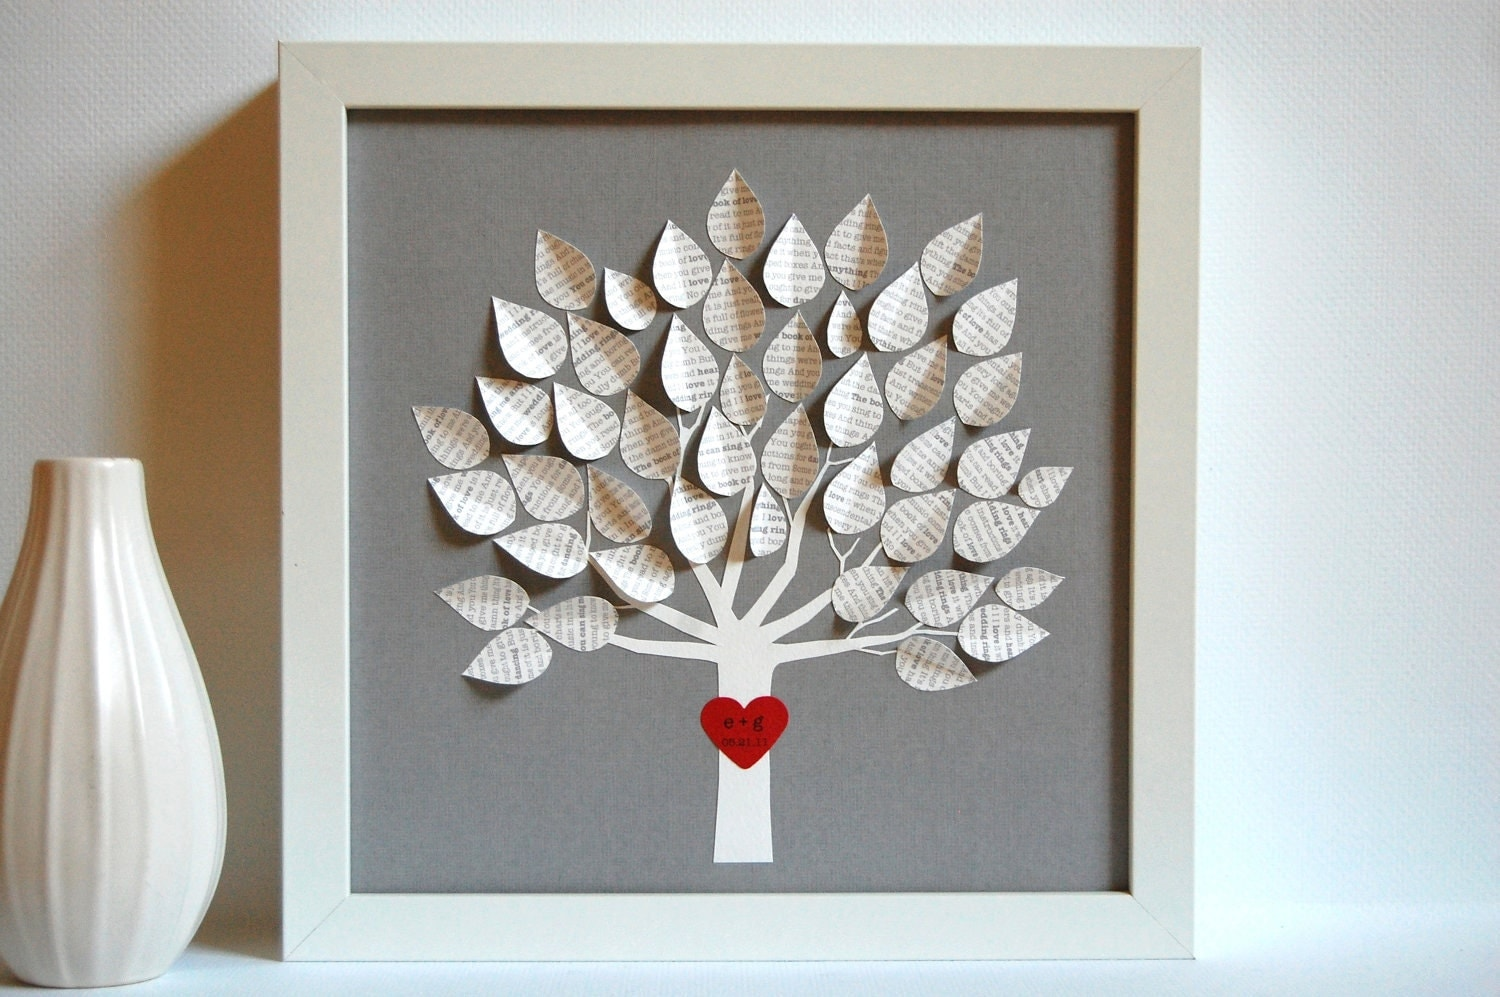 Wedding Gift Personalised: Wedding Gift Personalized 3D Song Tree Gray Made With